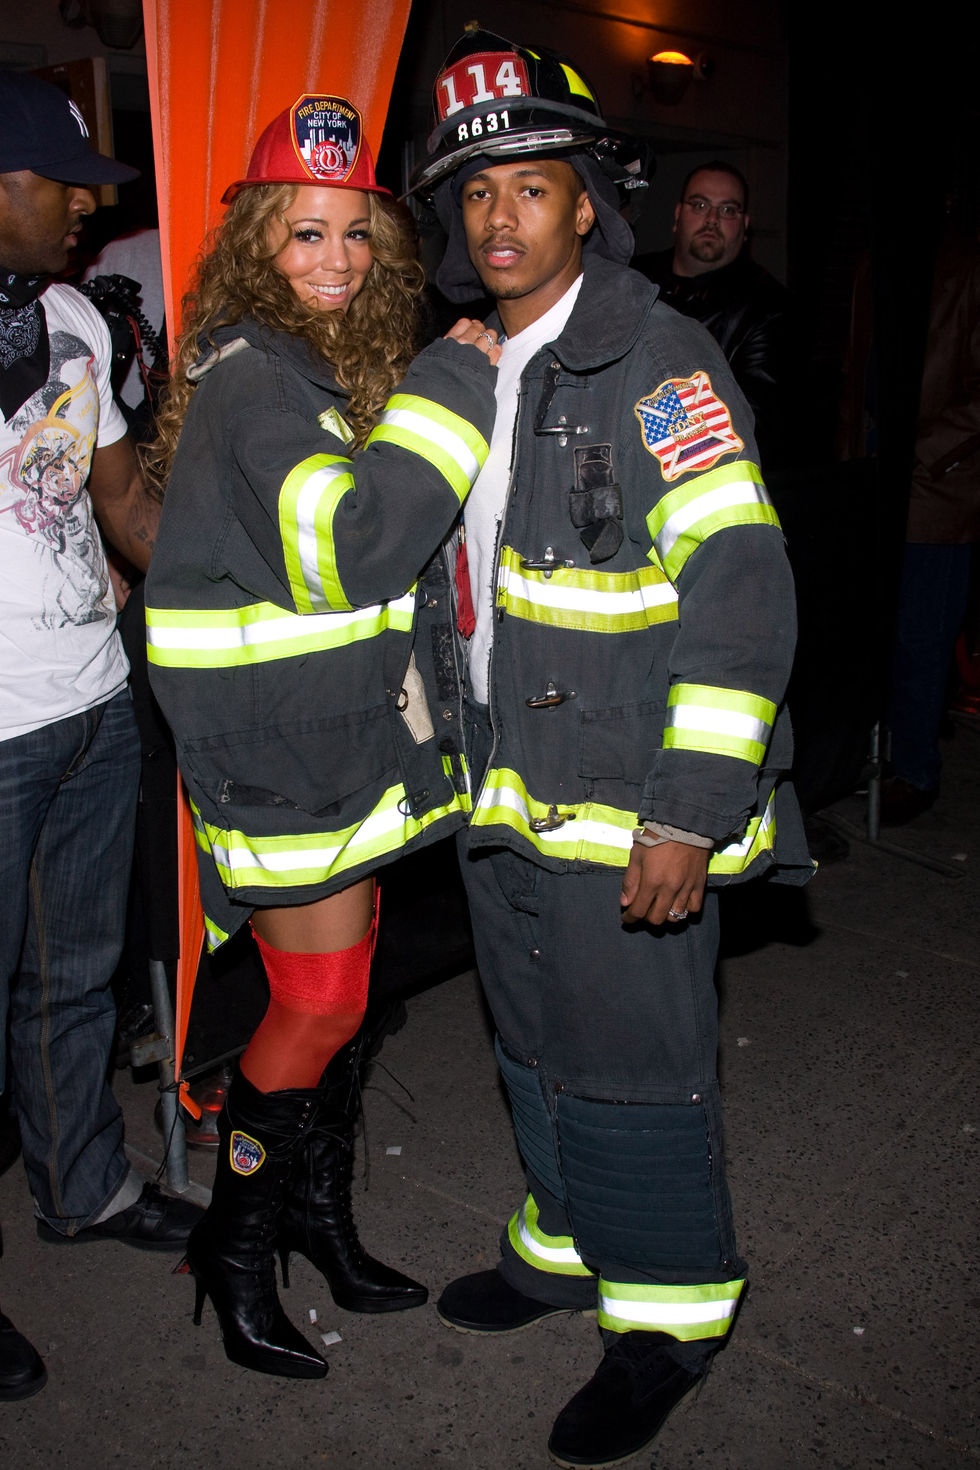 mariah-carey-as-firefighter-at-halloween-party-01